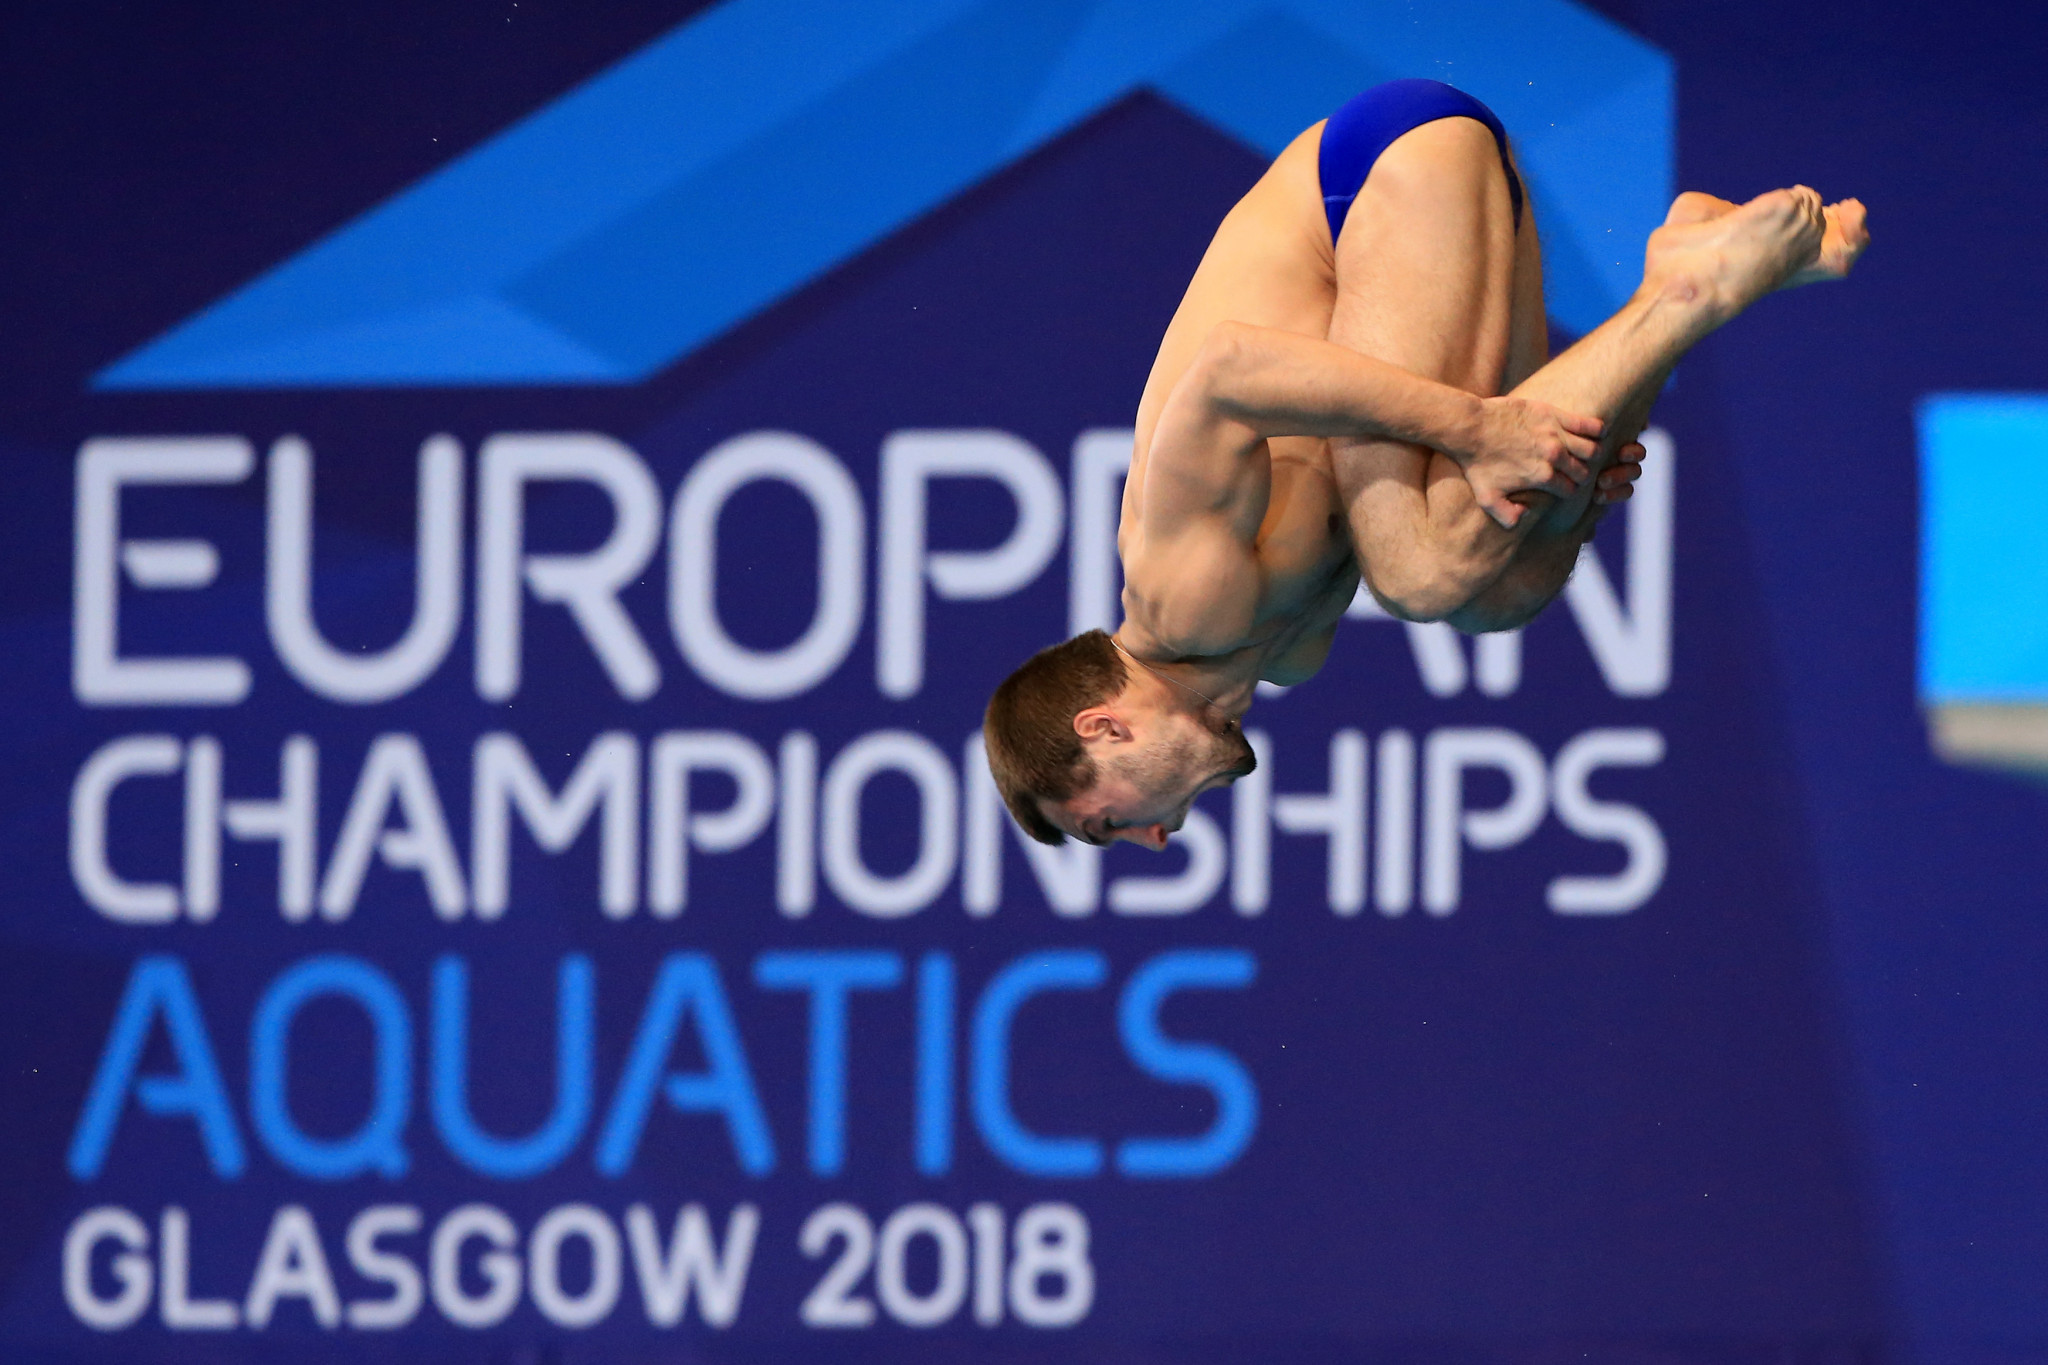 Russian dominates men's 10m platform event as finish top of diving medal standings at Glasgow 2018